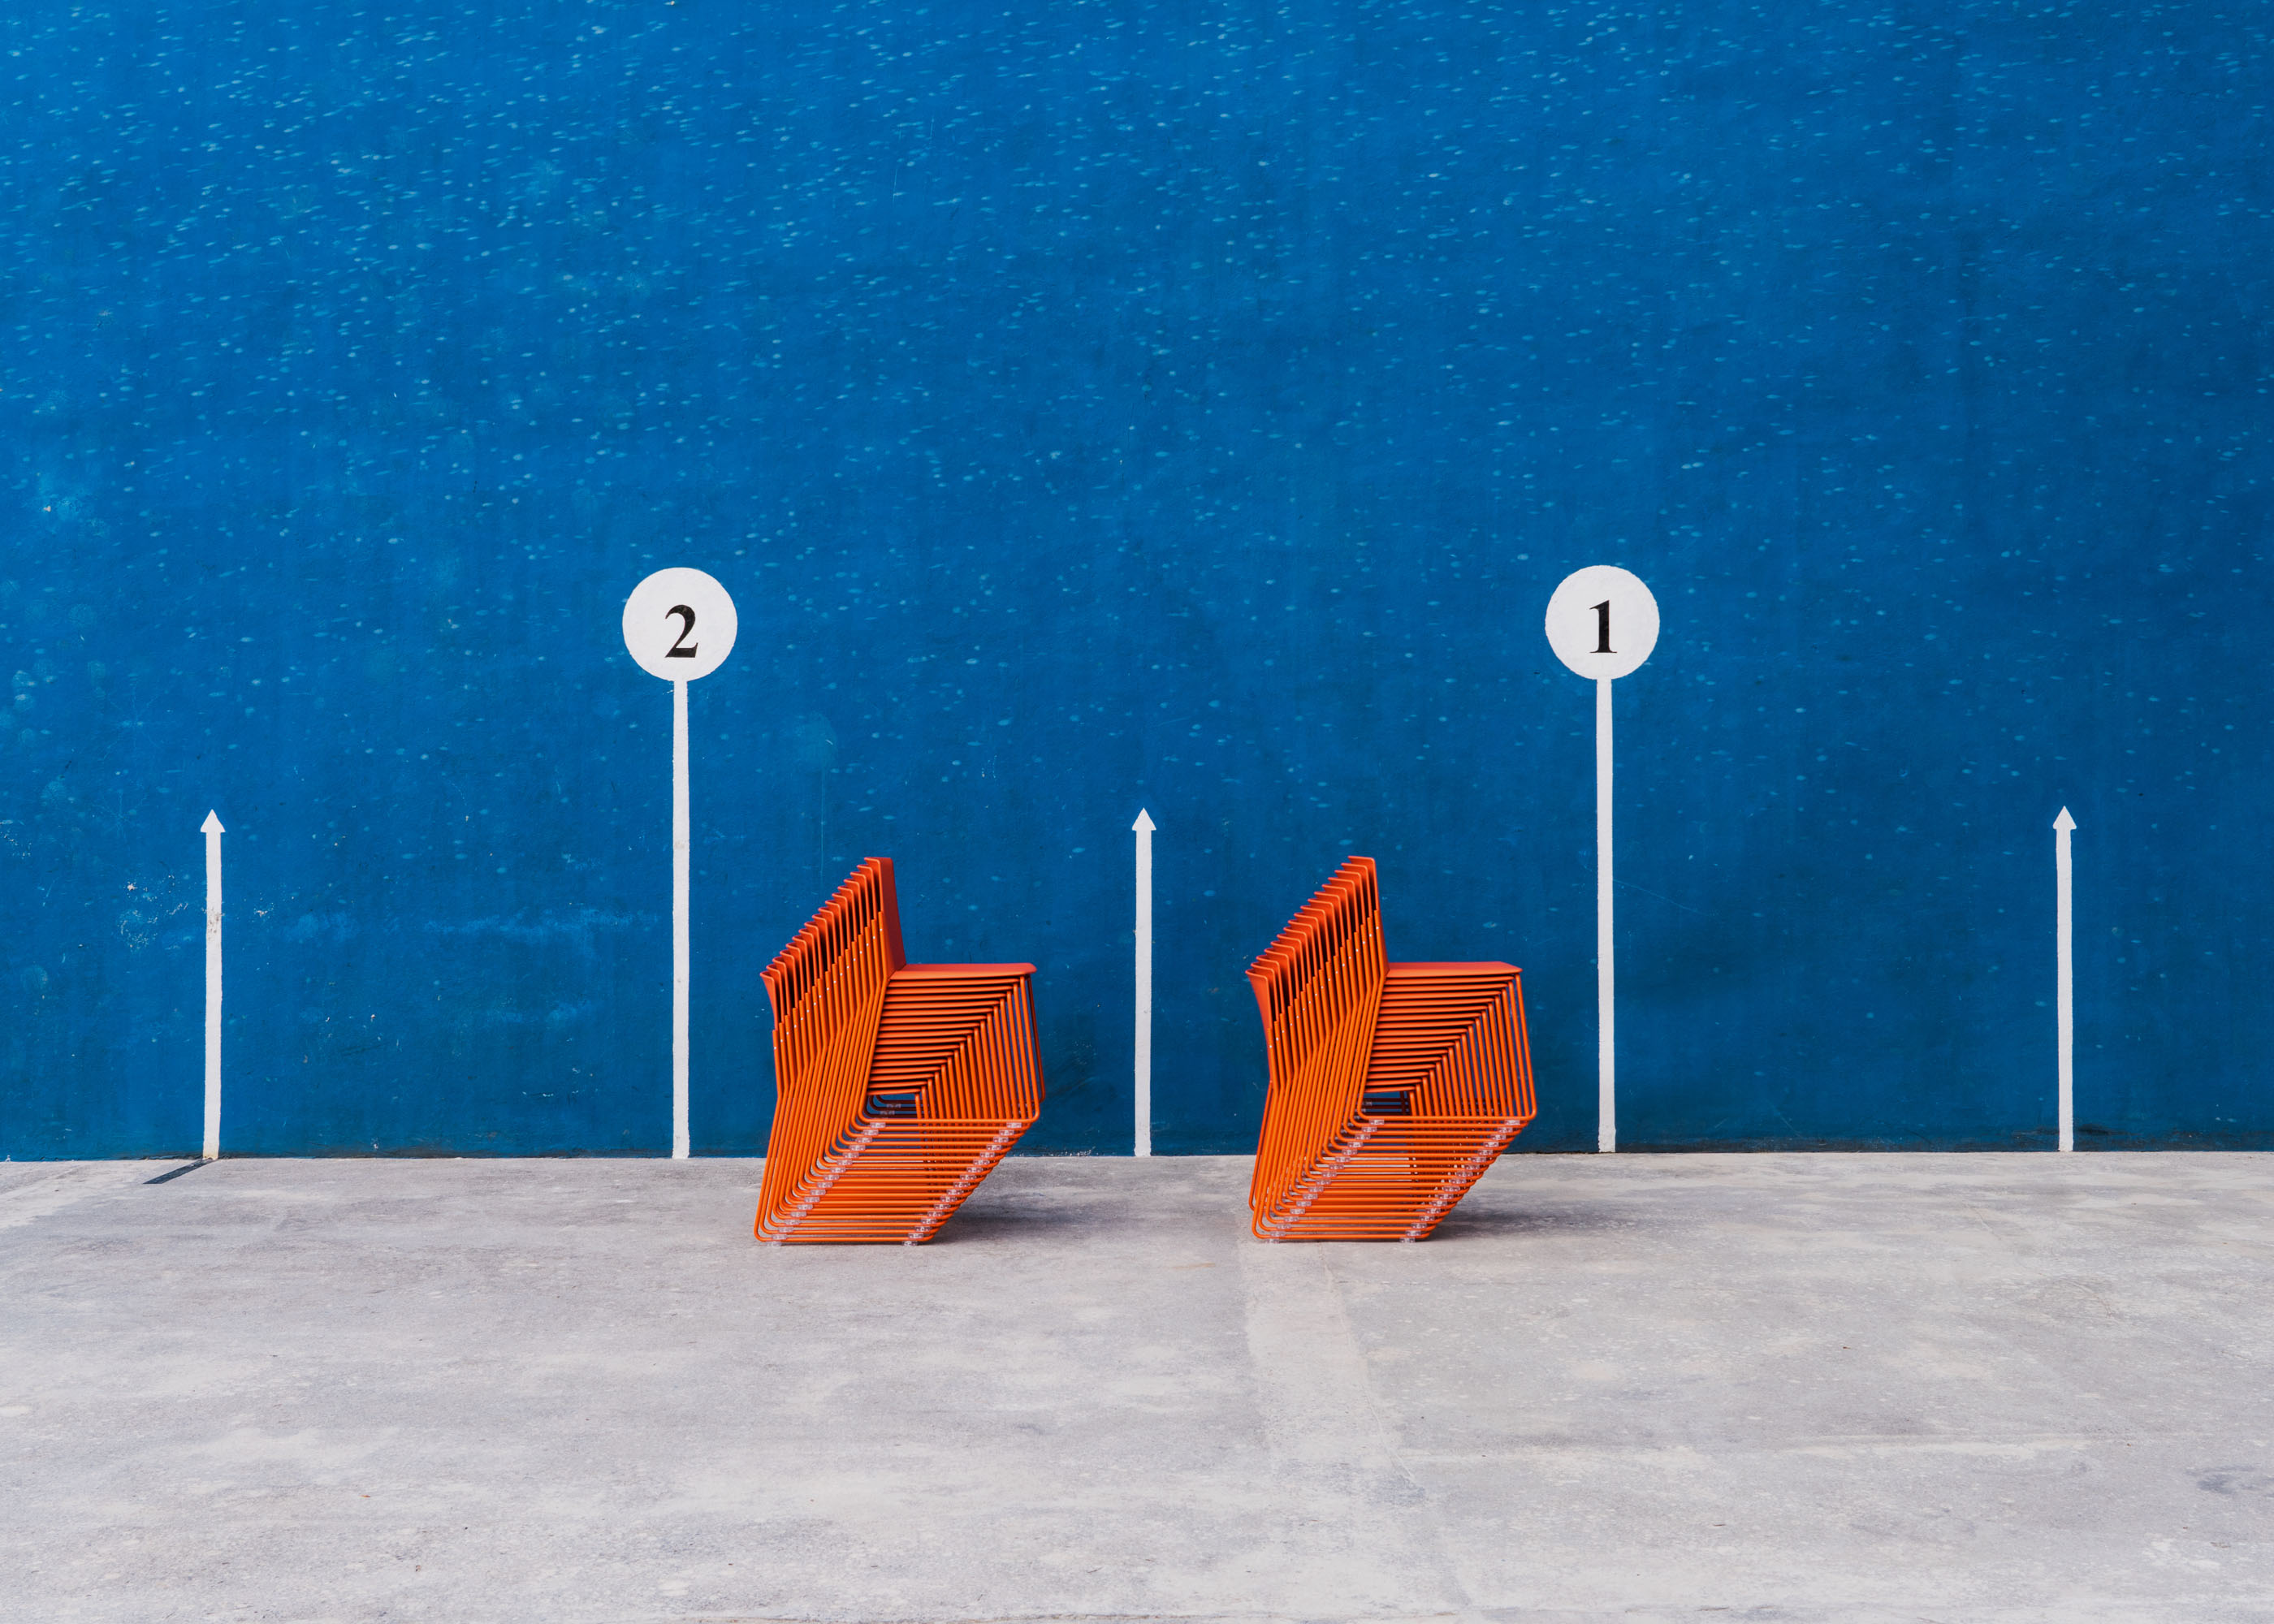 #furniture #enea #design #clase #basque #chairs #stilllife #fronton #blue #orange